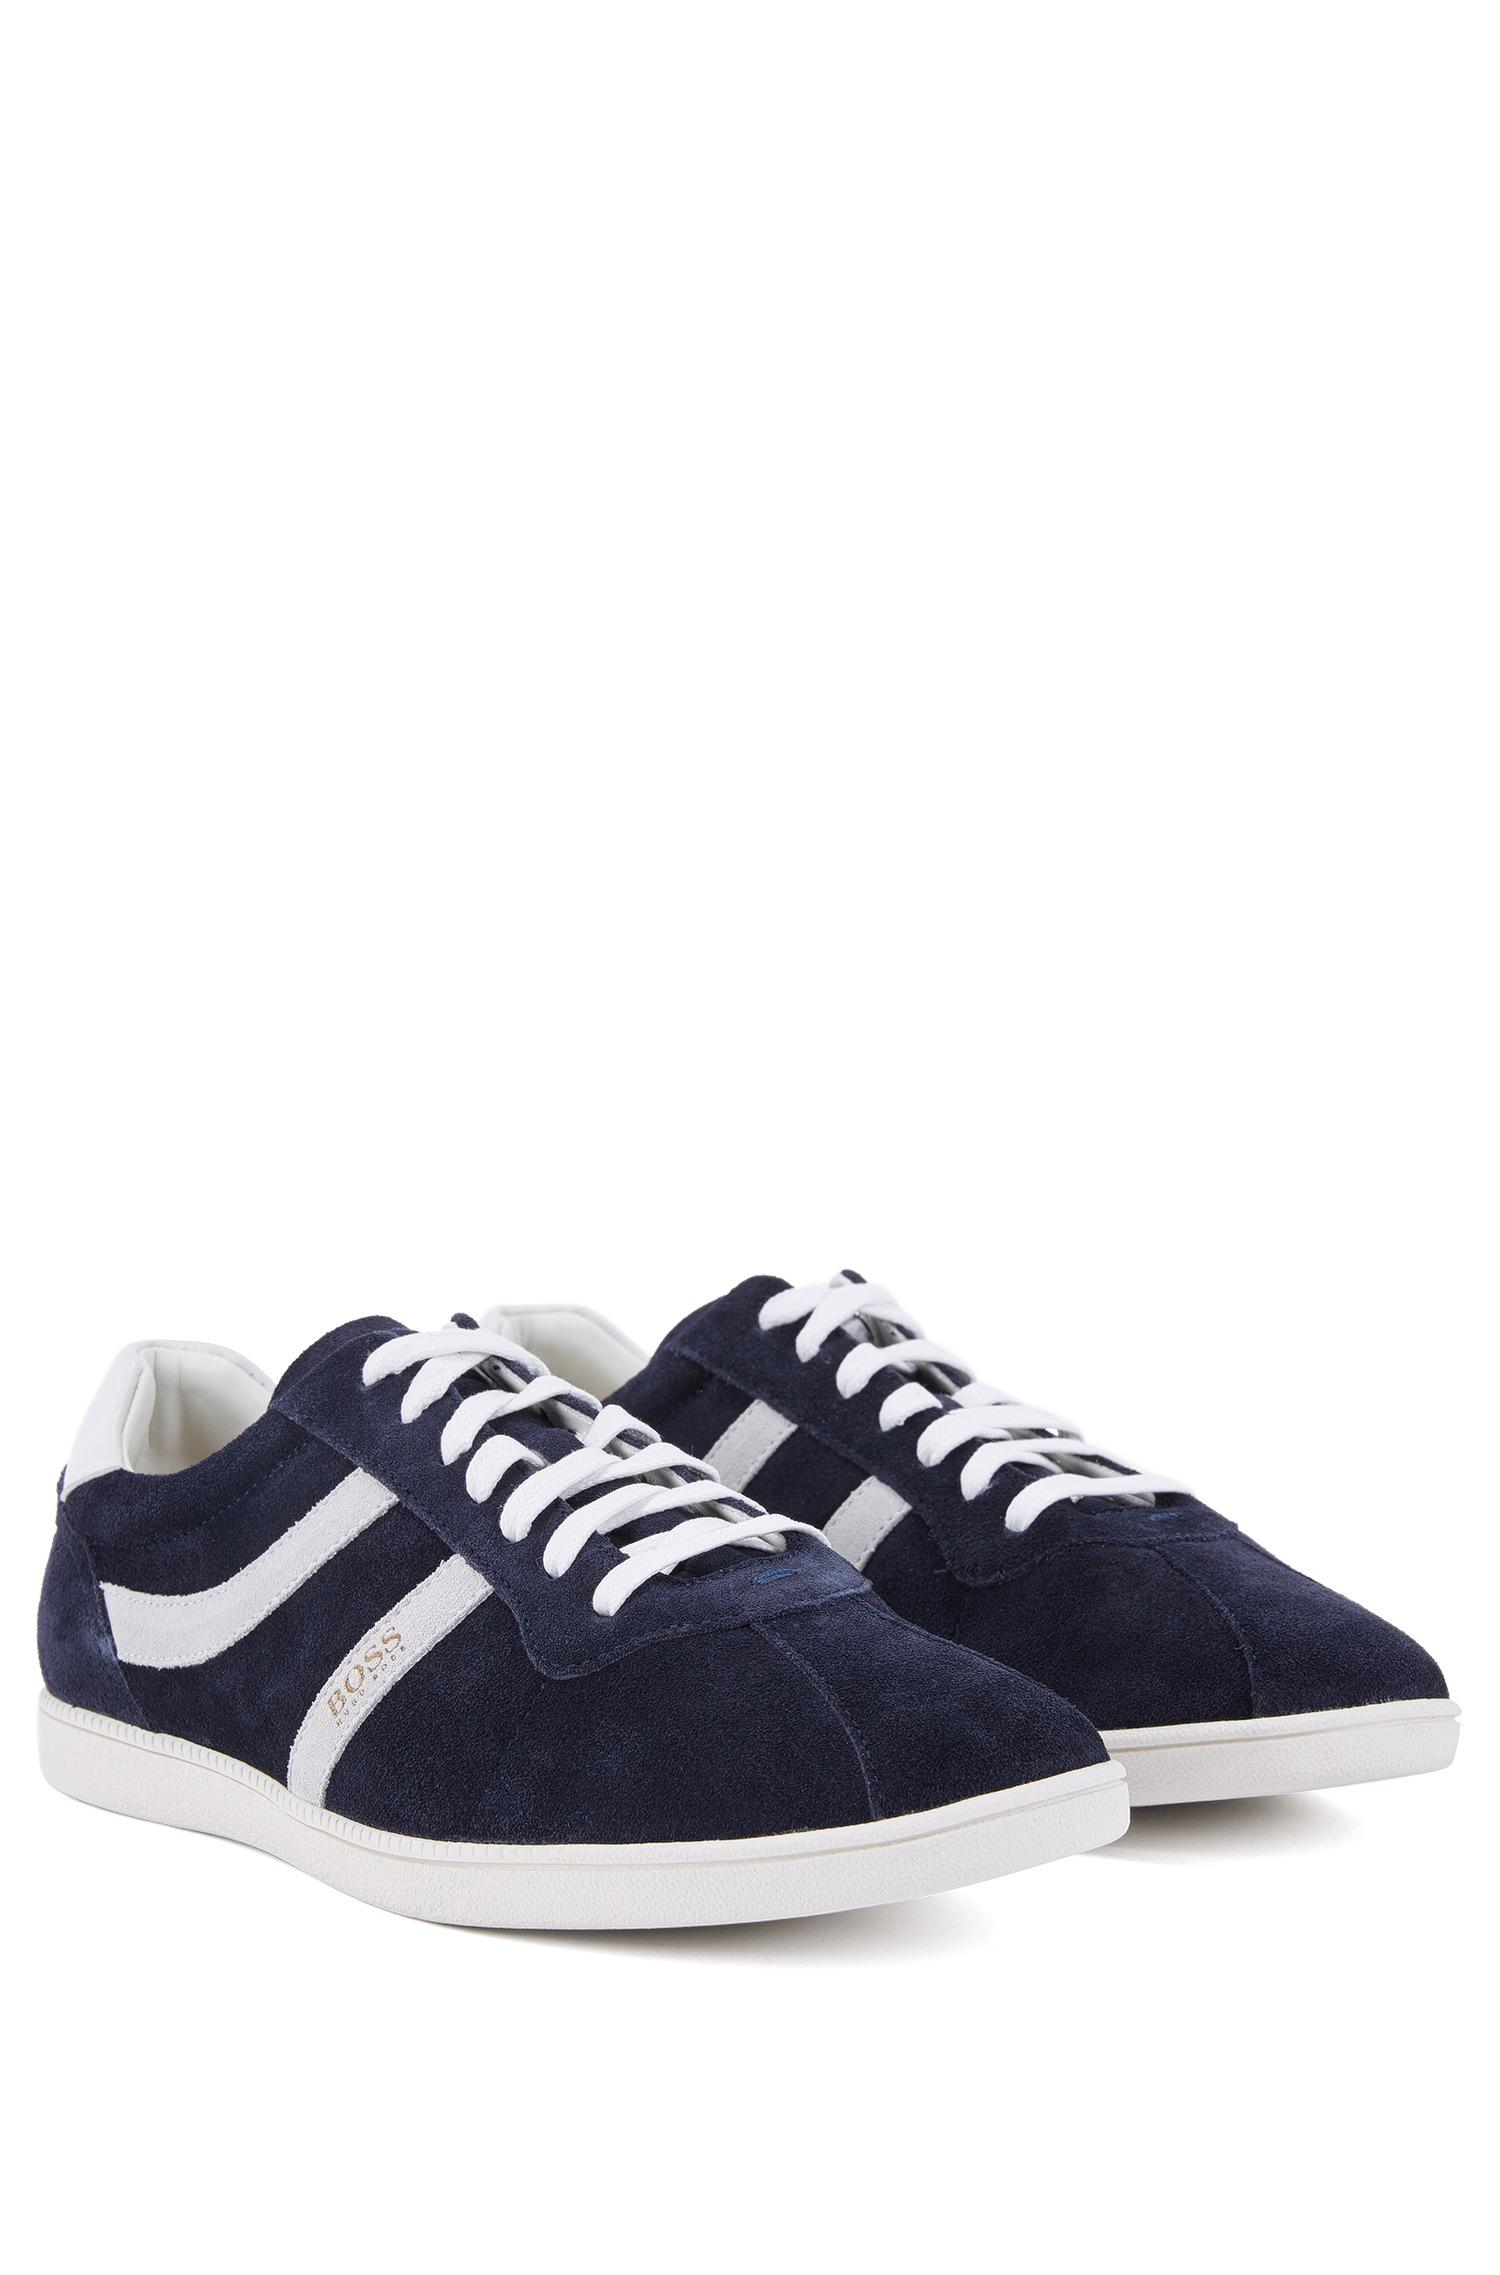 Mens Rumba_Tenn_sd Trainers, Blue HUGO BOSS